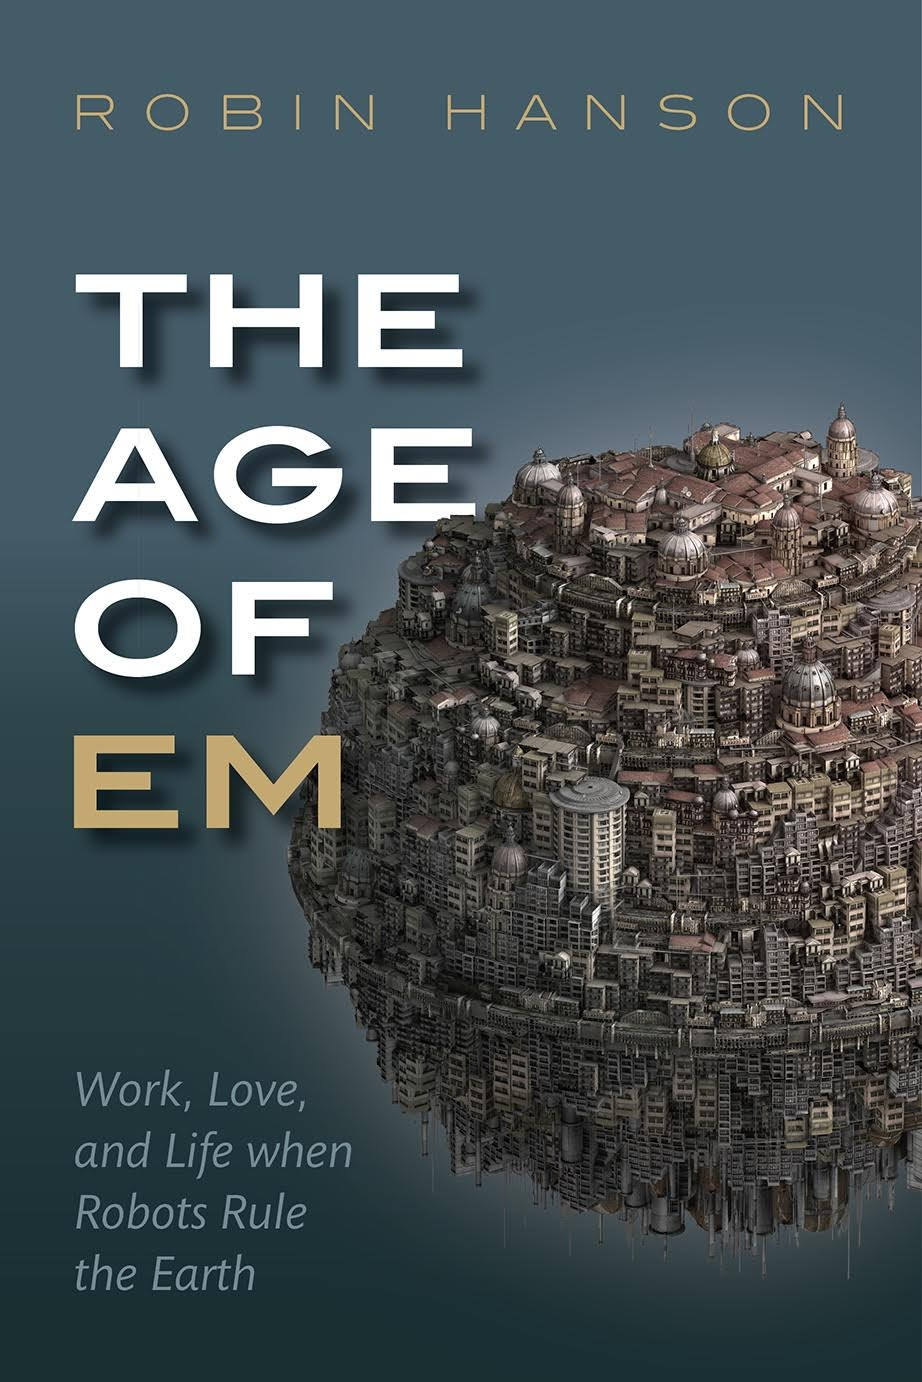 Link to the Amazon page for The Age of Em